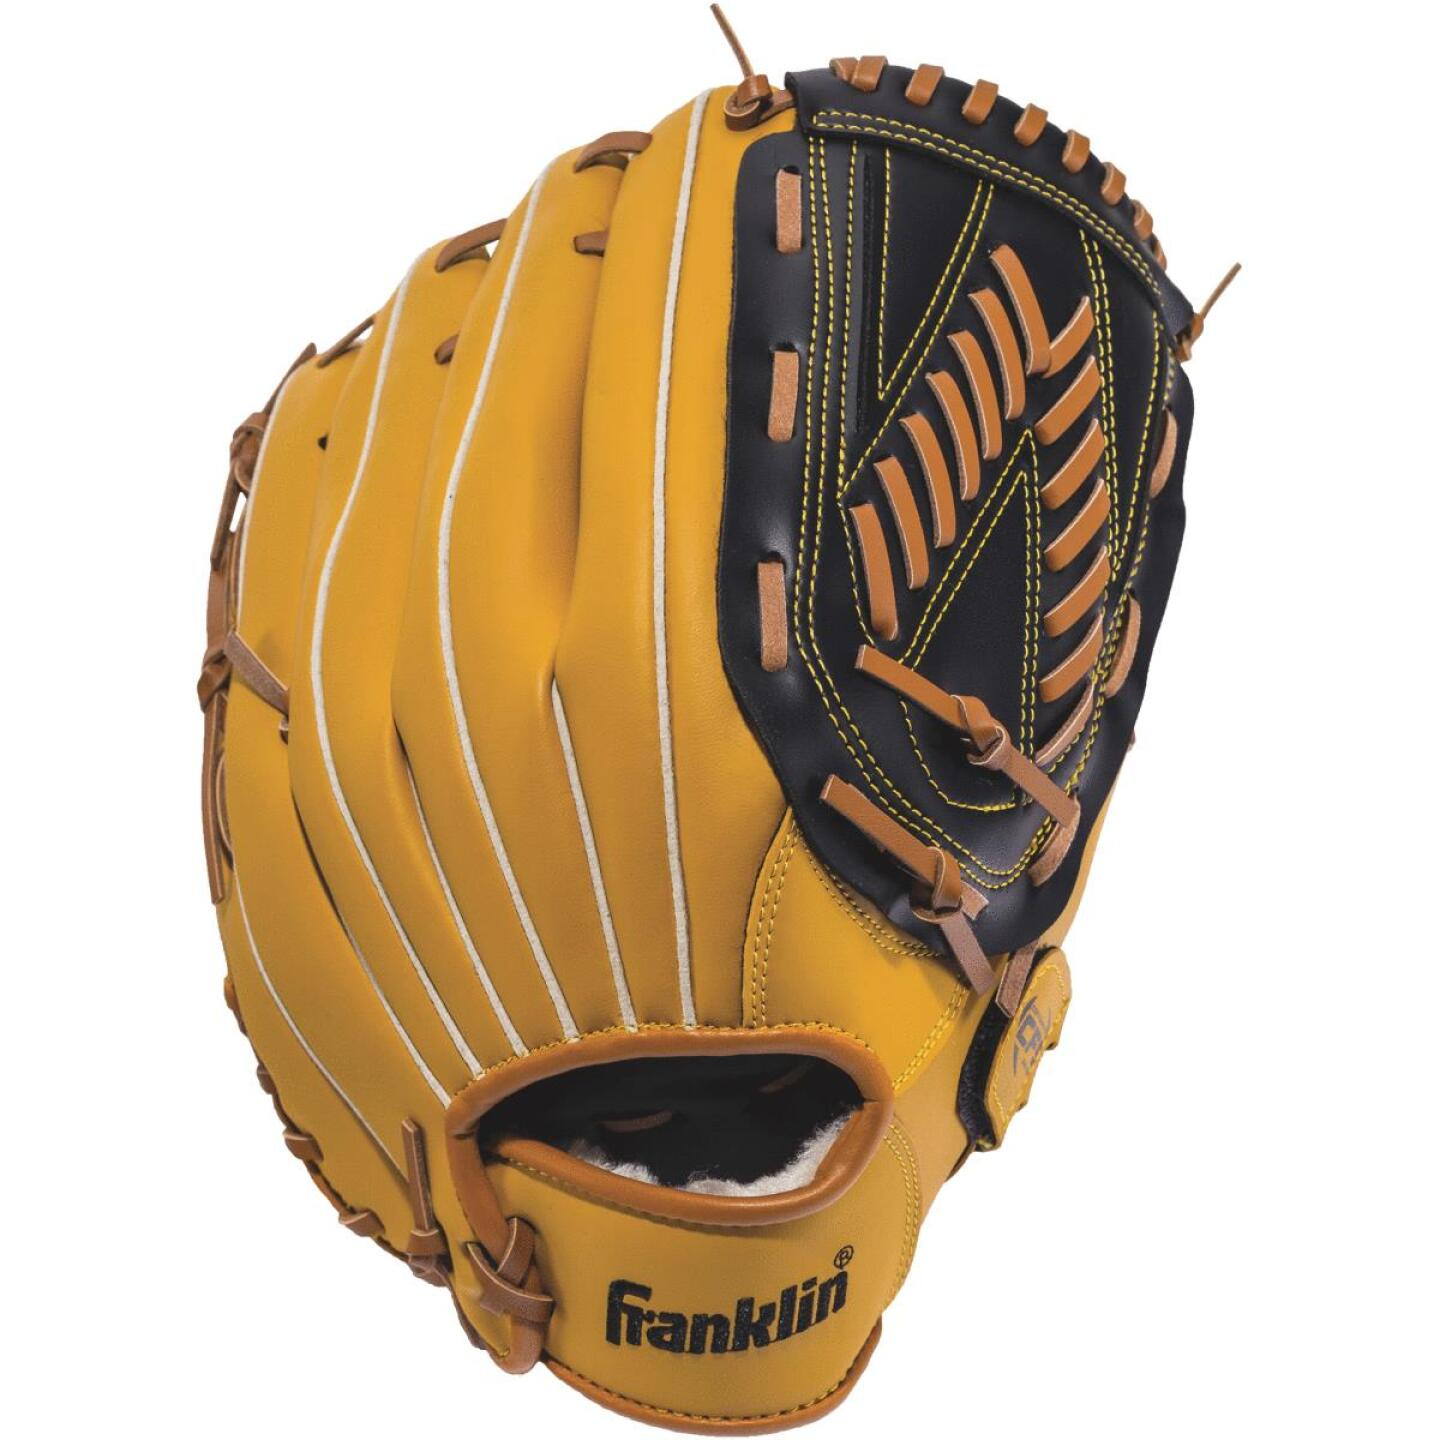 Franklin Field Master Series 13 In. Adult Right-Handed Thrower Baseball/Softball Glove Image 2